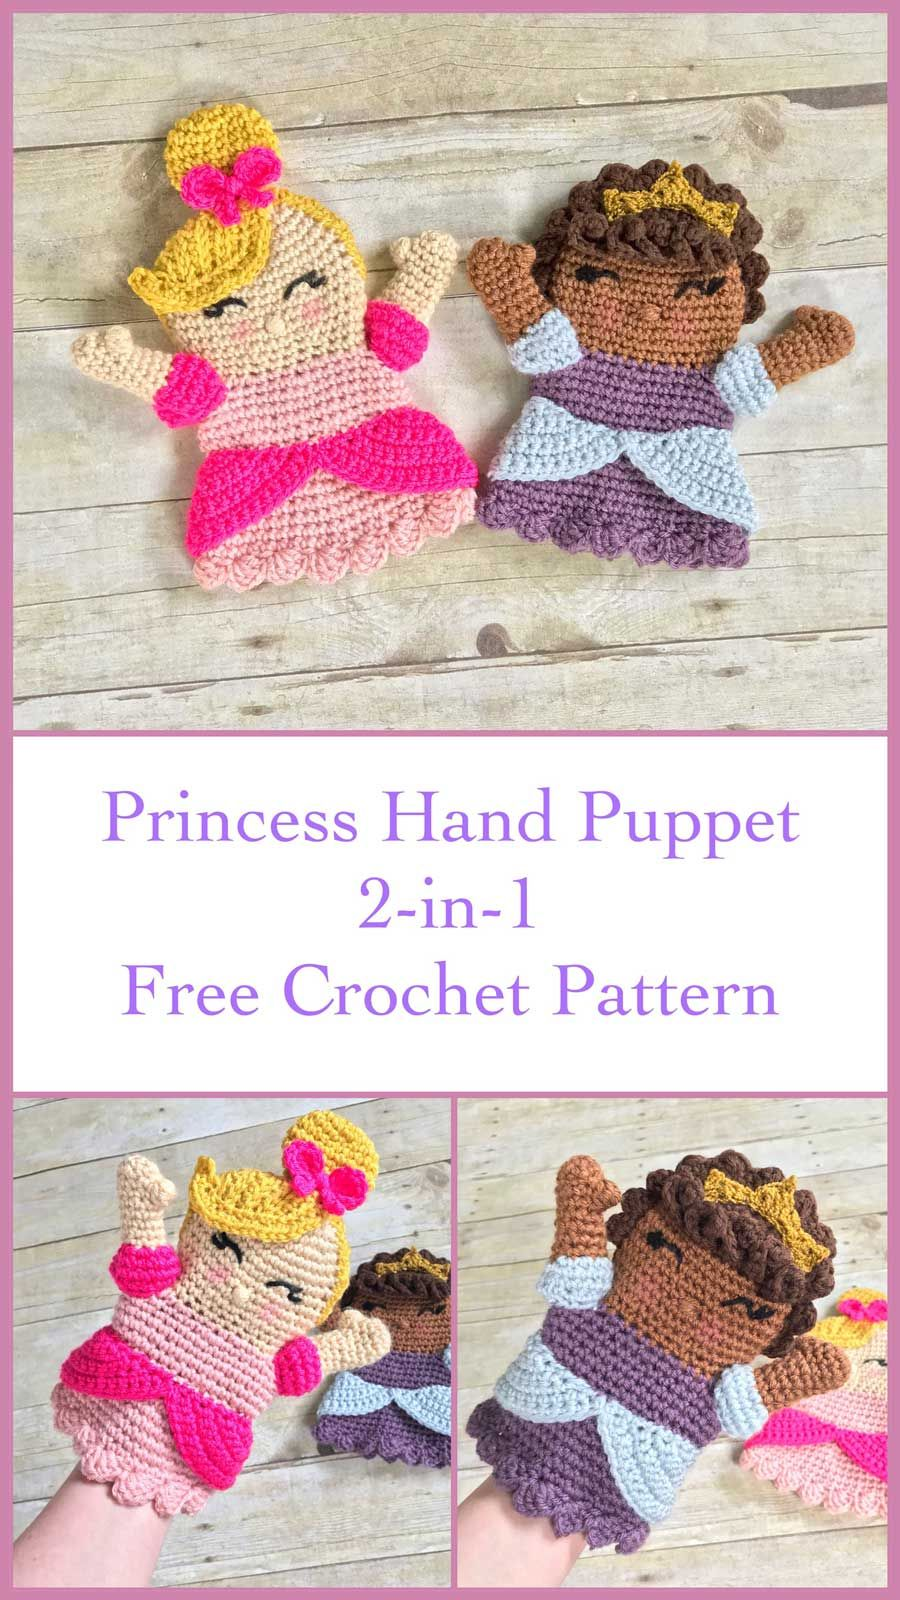 Princess Hand Puppet, Free Crochet Pattern Make this adorable ...